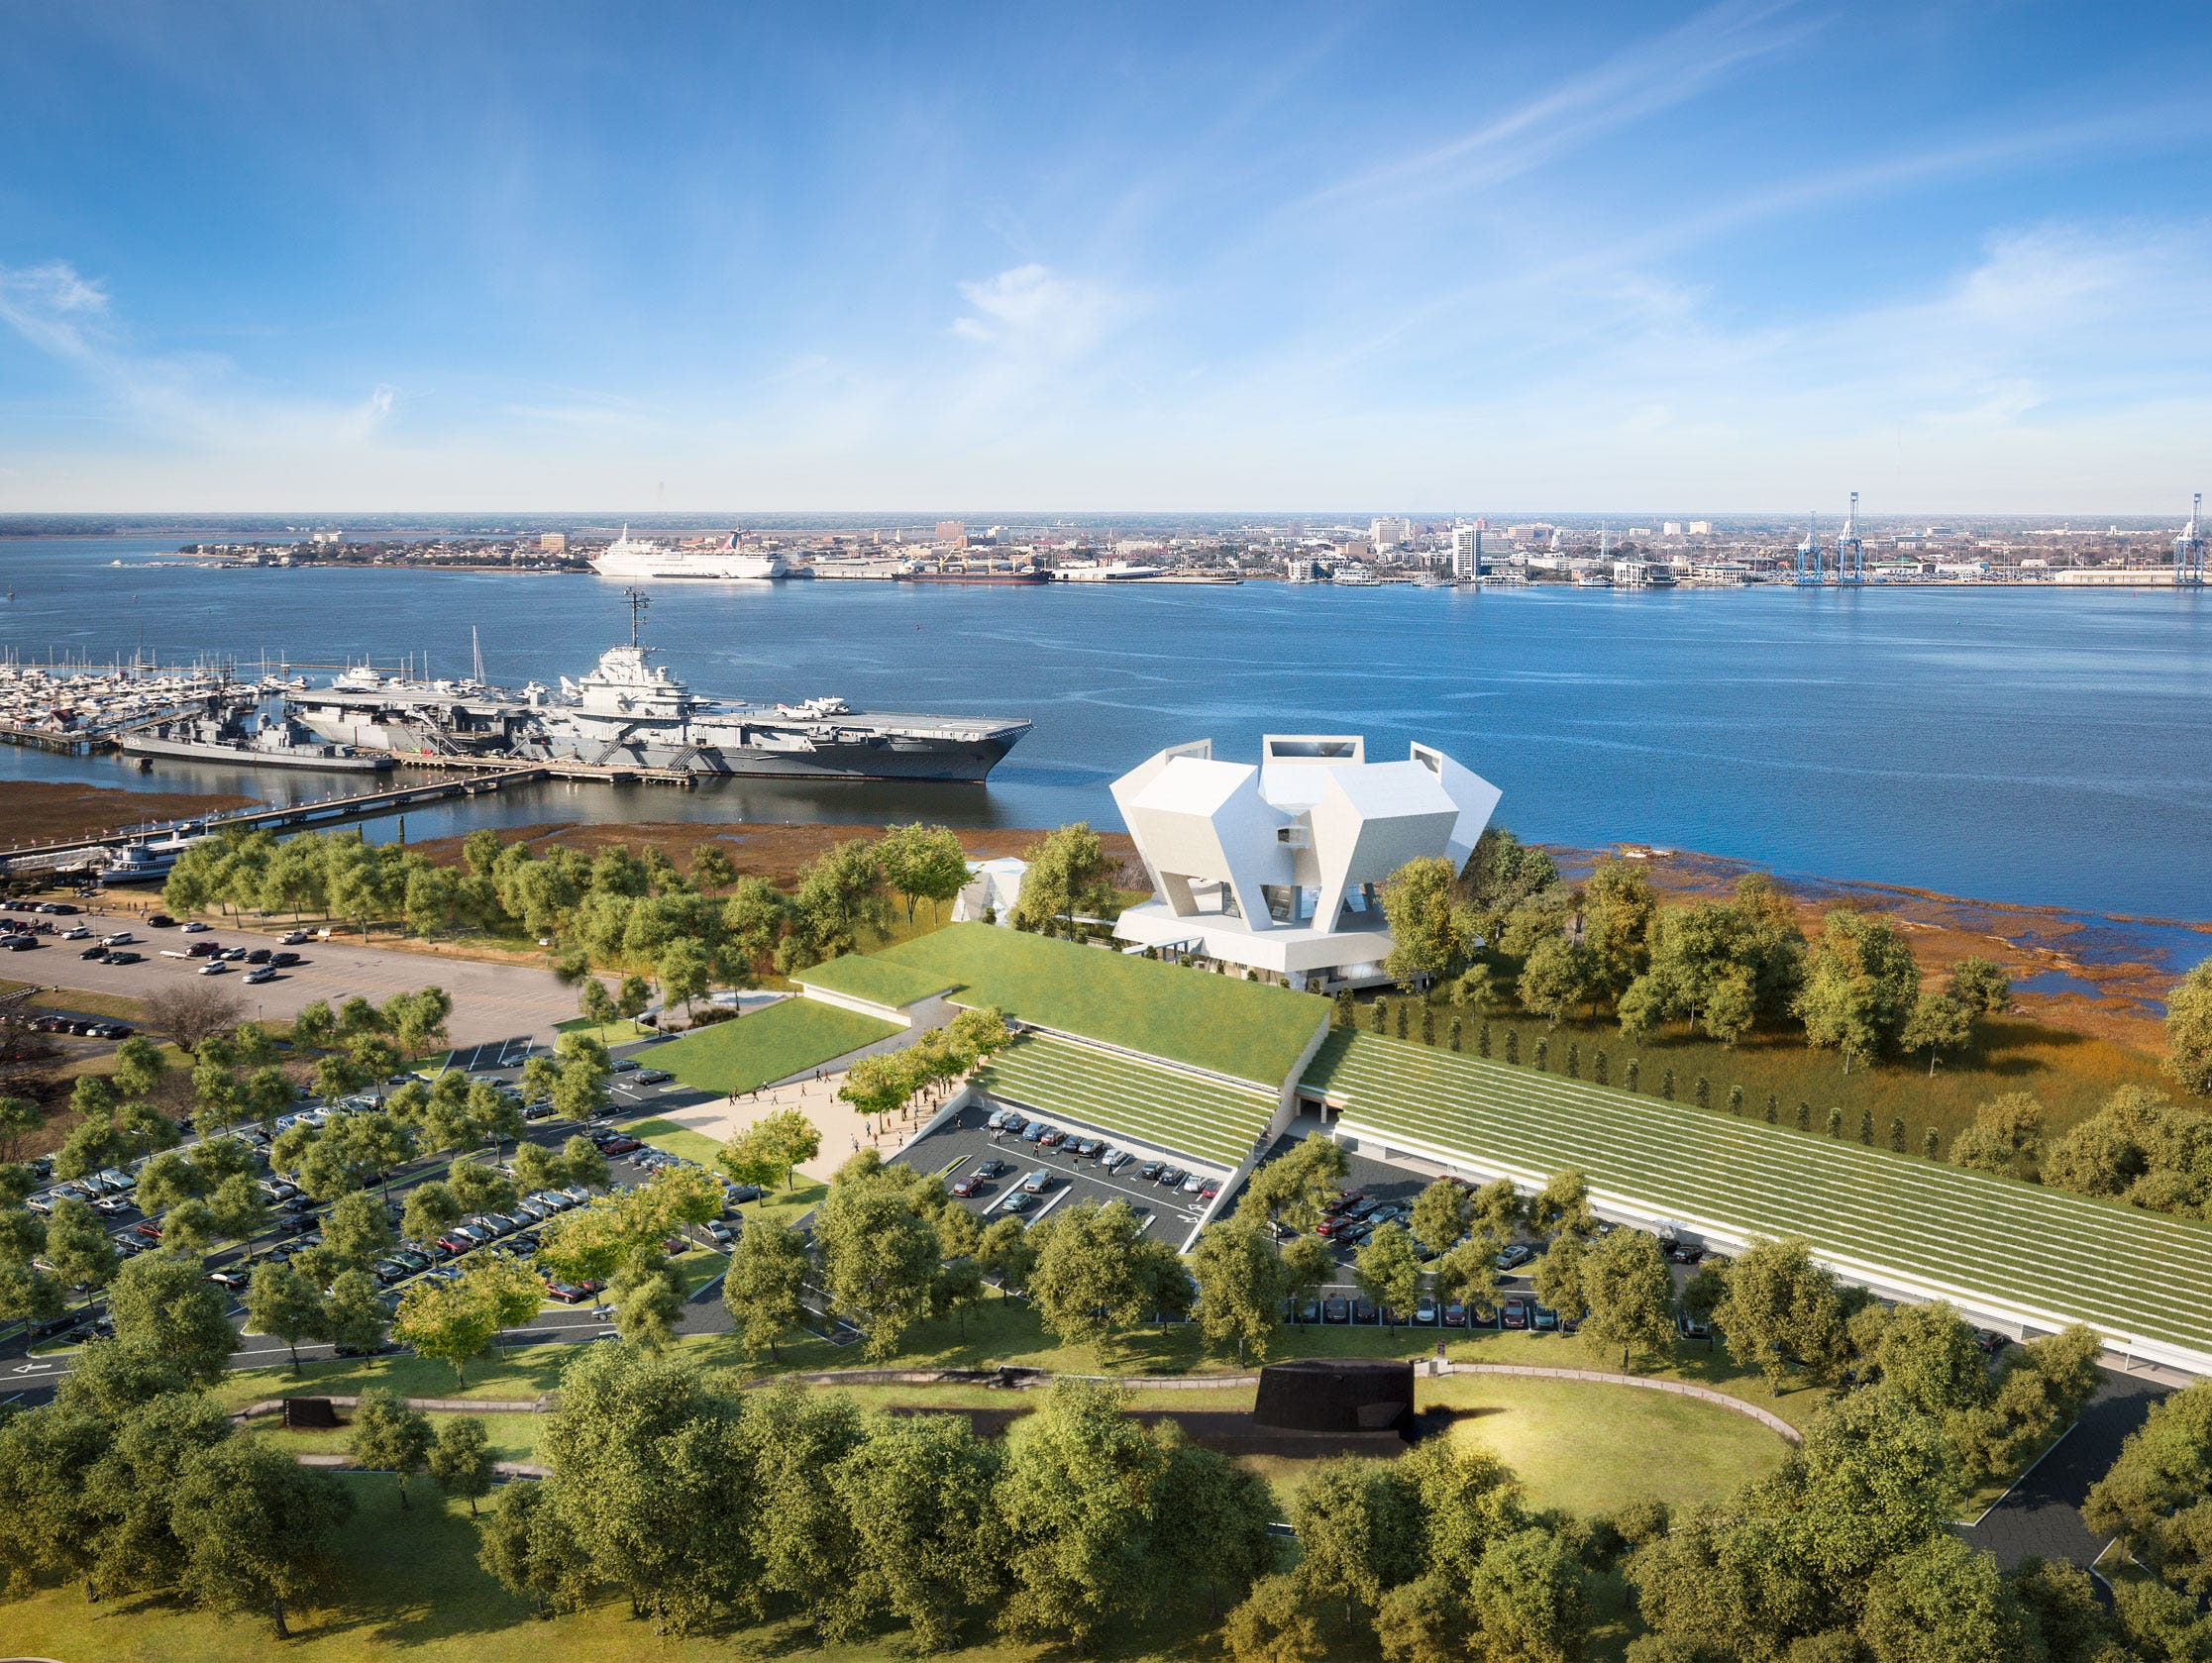 Design released for $98 million Medal of Honor museum